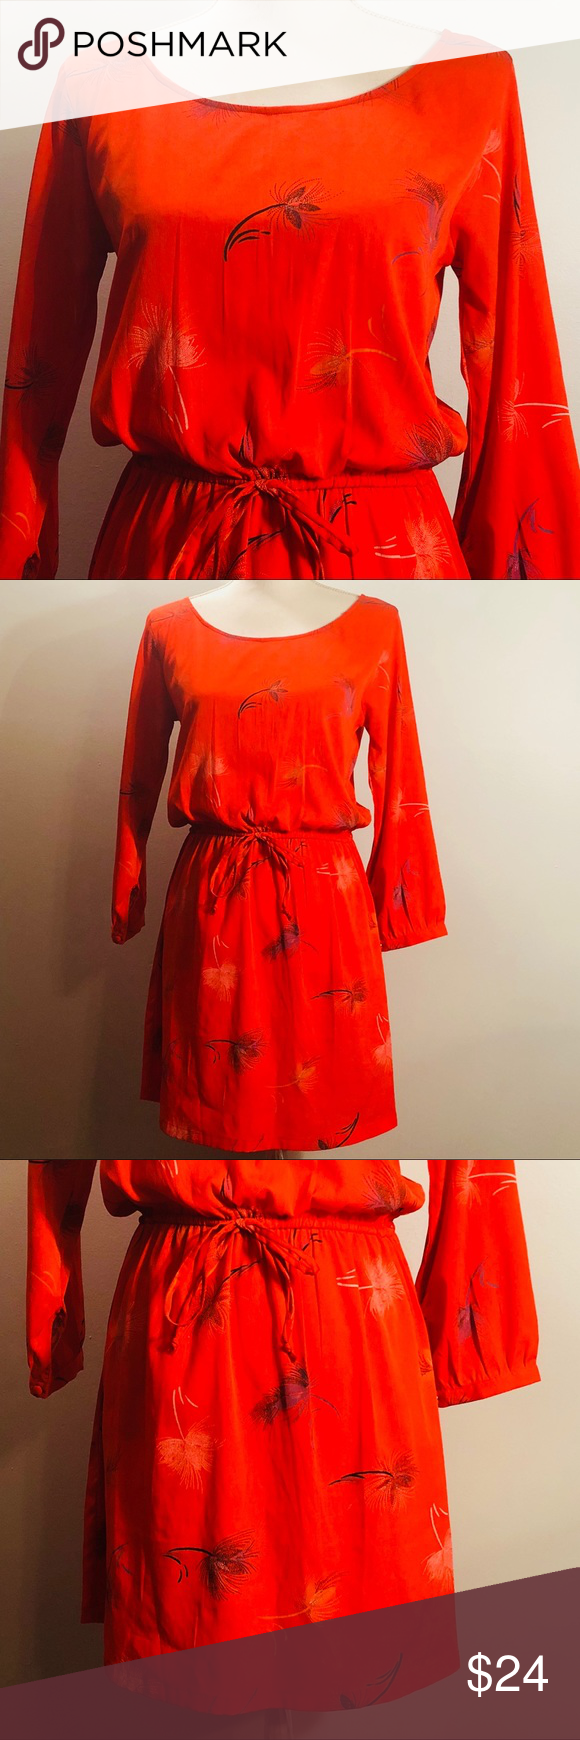 bcf04c676a2 O'Neill Orange Floral Drawstring Midi Dress O'Neill Orange Floral  Drawstring Midi Dress. Orange with a poppy floral print. Round neckline. Long  sleeves with ...